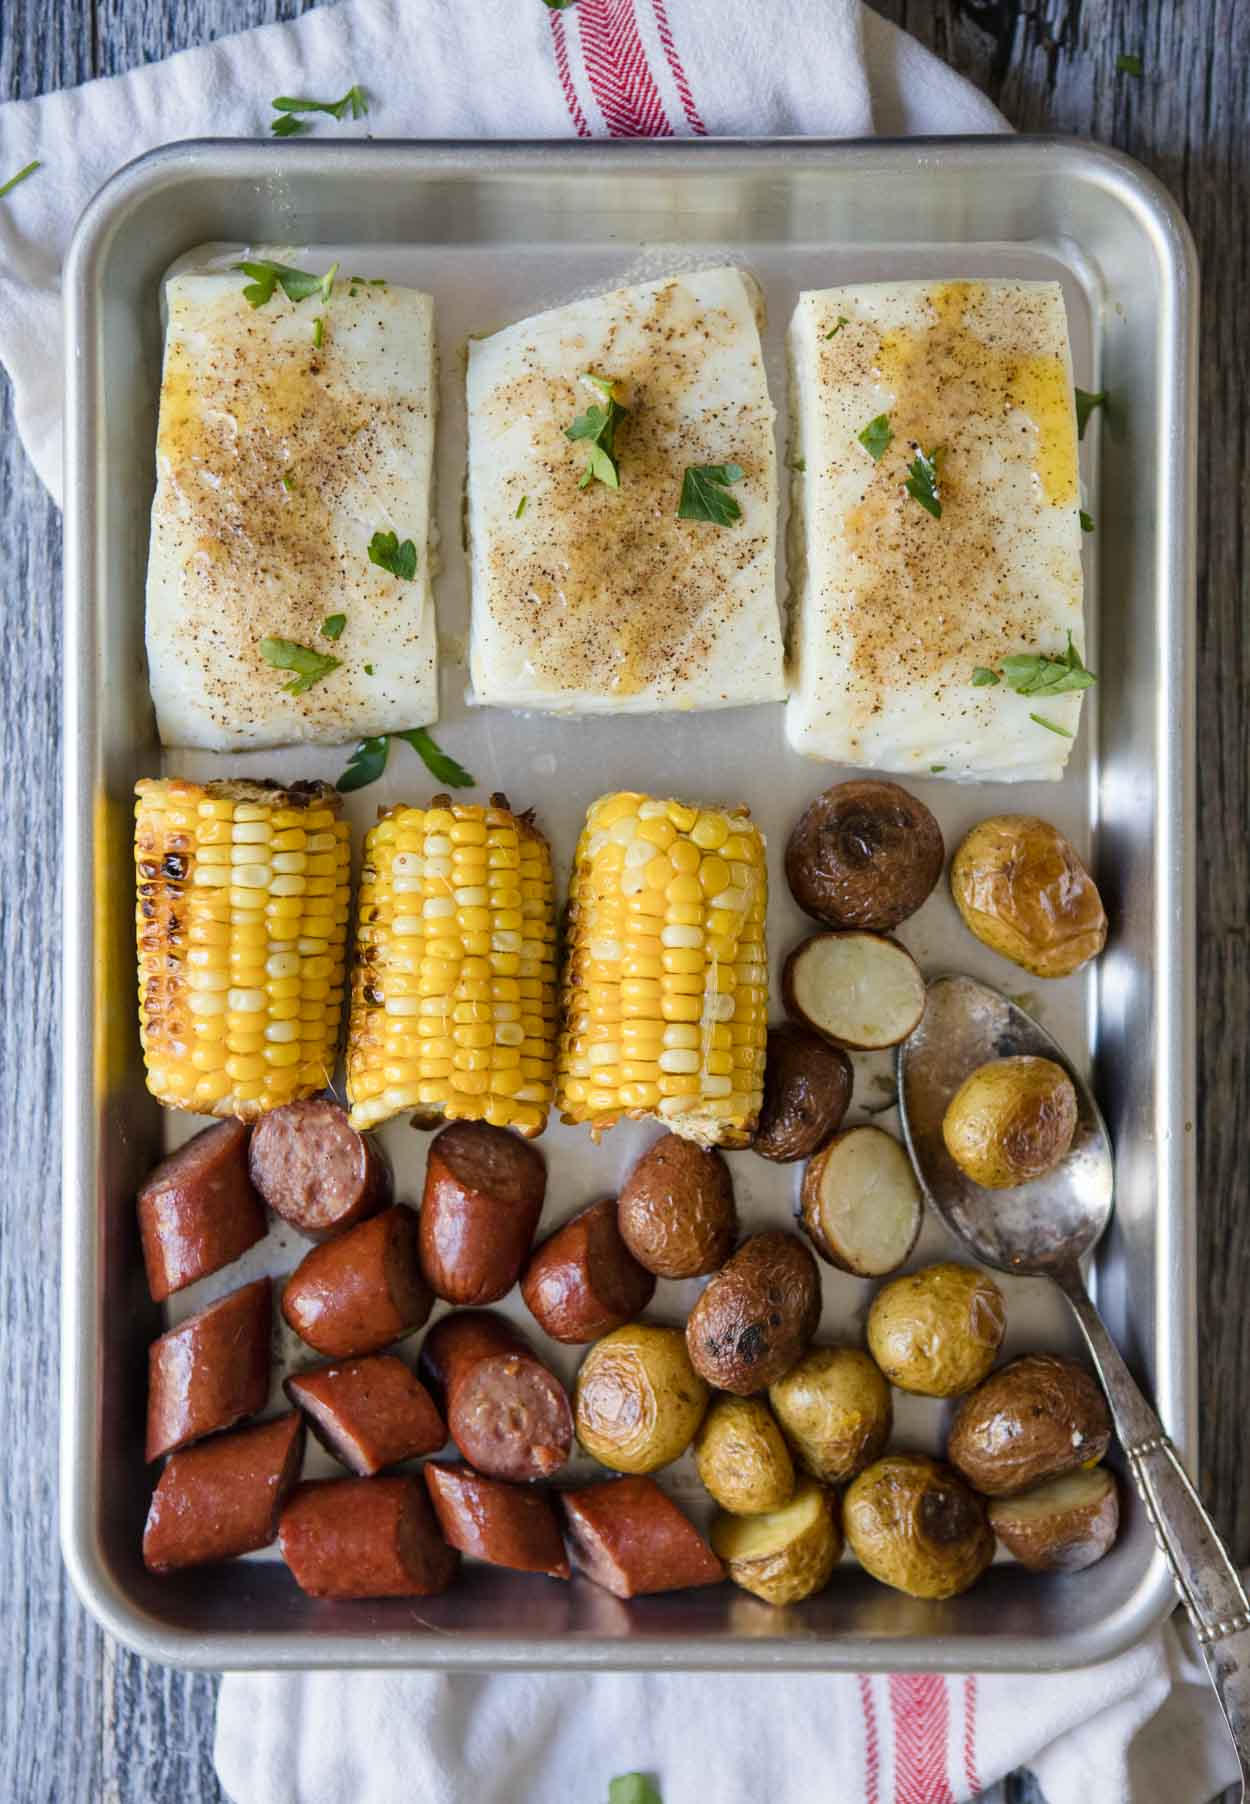 halibut, corn, sausage, and potatoes on a silver baking tray